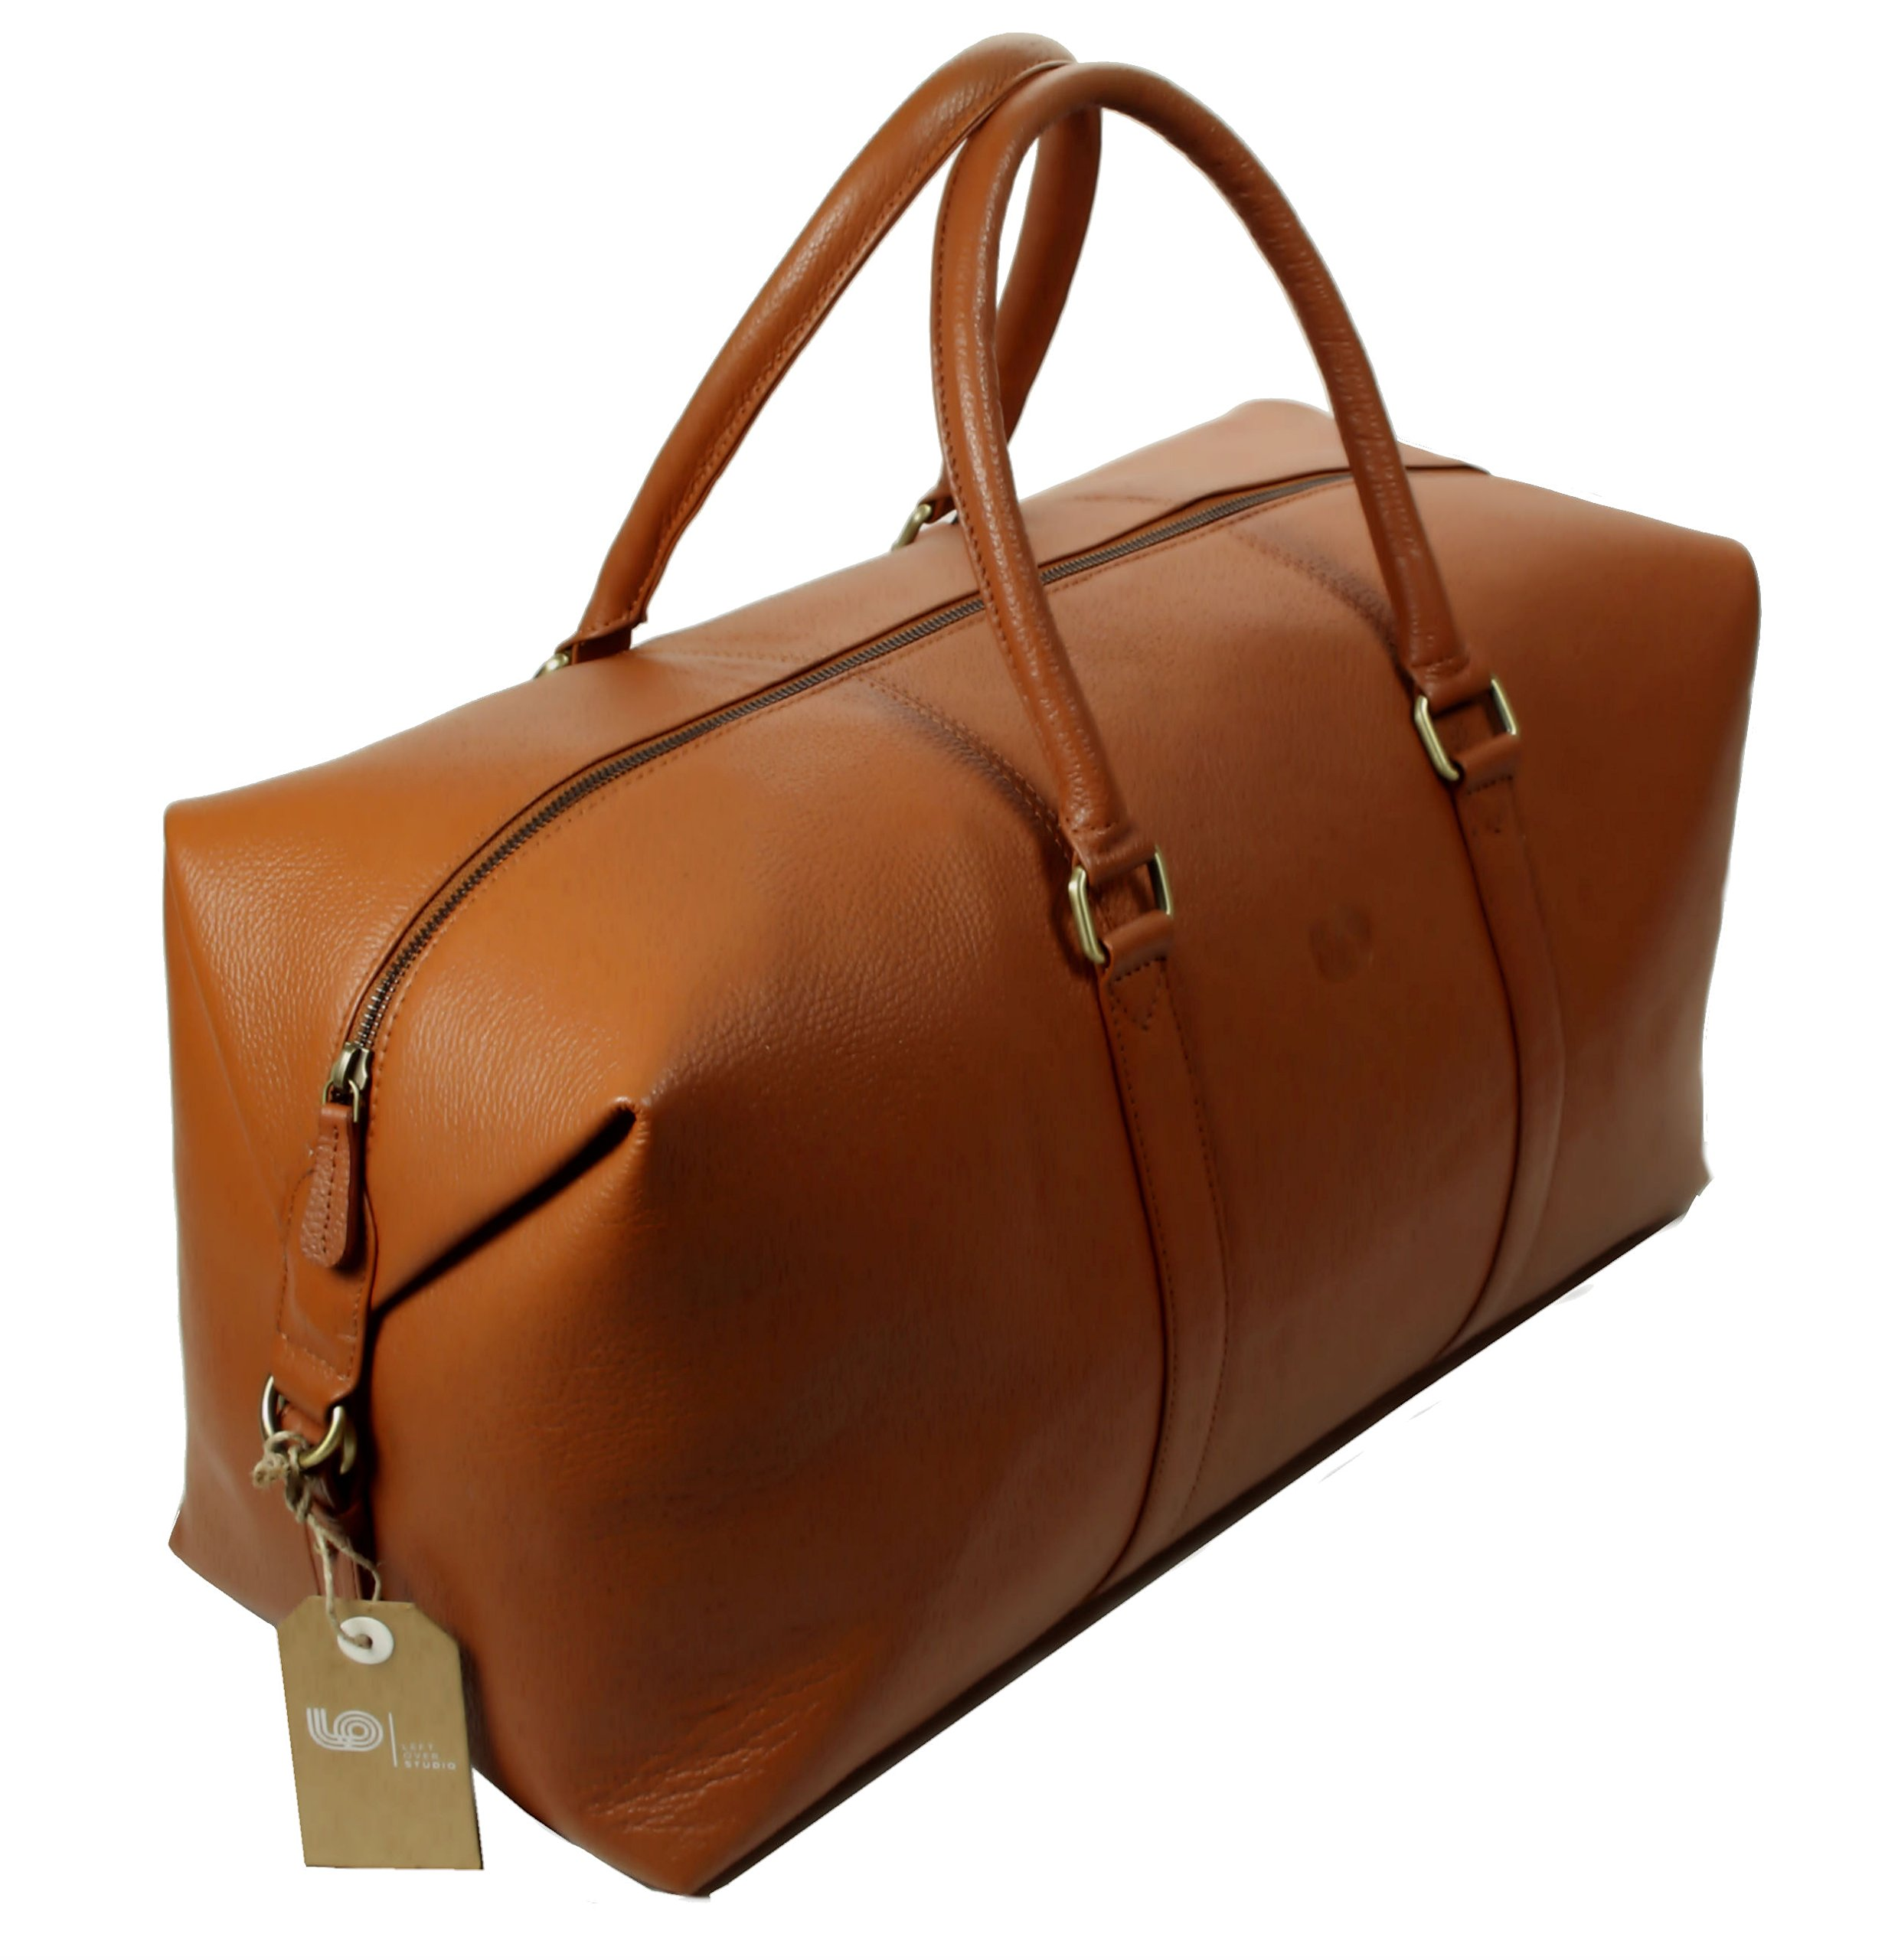 LeftOver Studio Expandable Weekend Overnight Travel Duffel Bag in Tan Top Grain Cow Leather by Leftover Studio (Image #4)